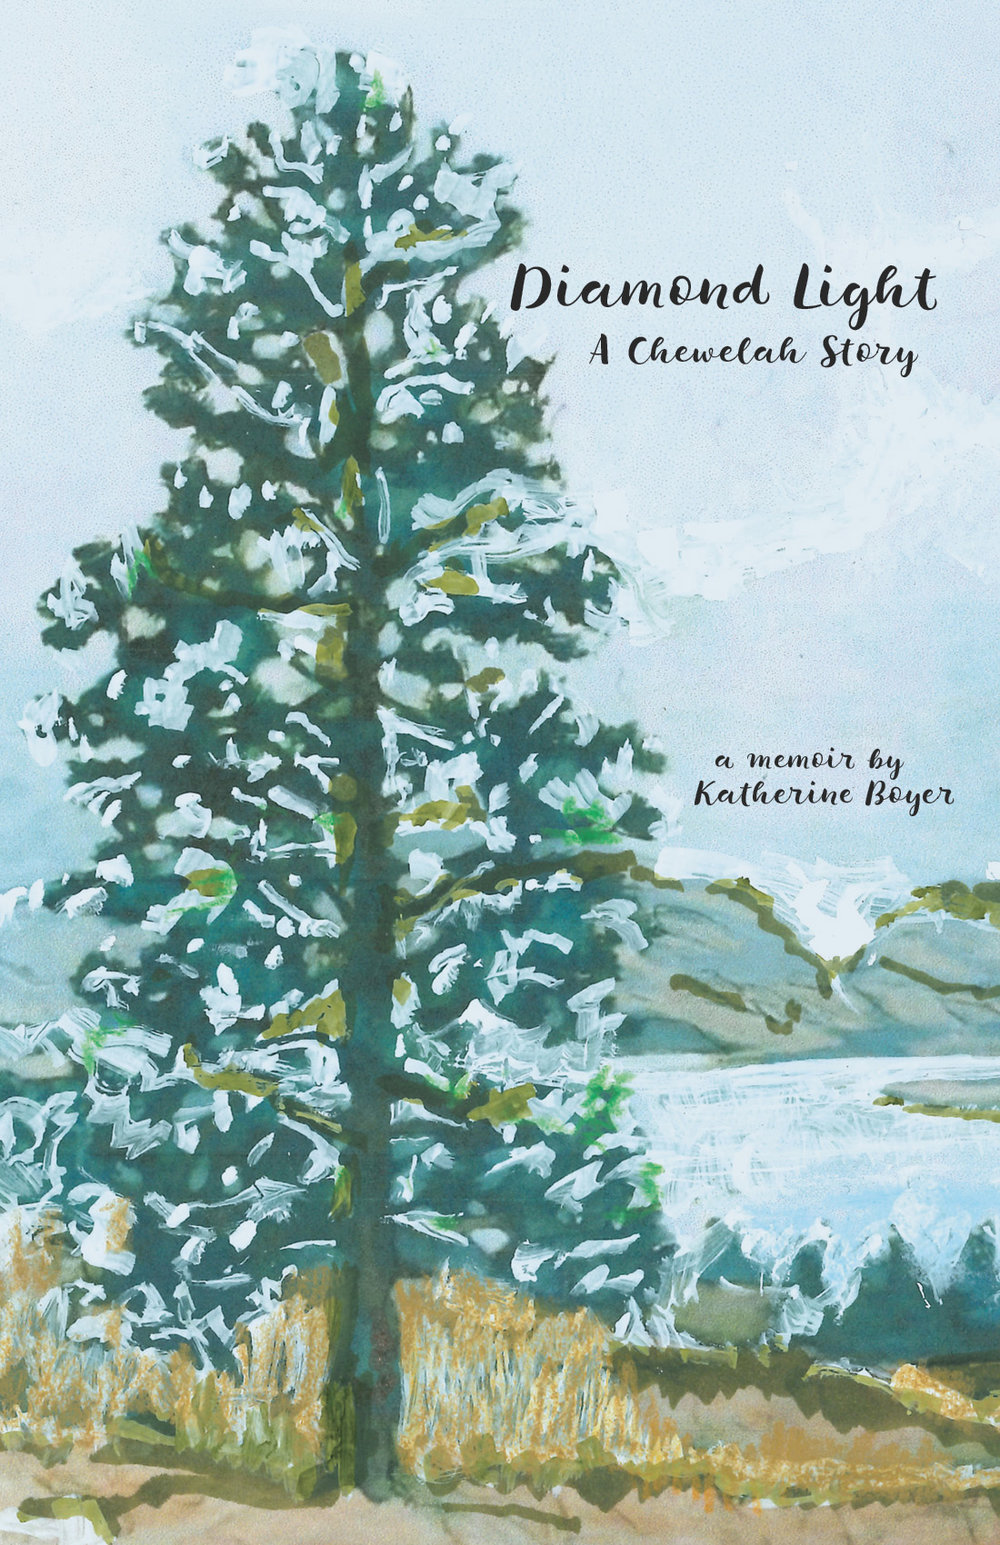 Diamond Light by Katherine Boyer (Blue Jay Press, 2017)